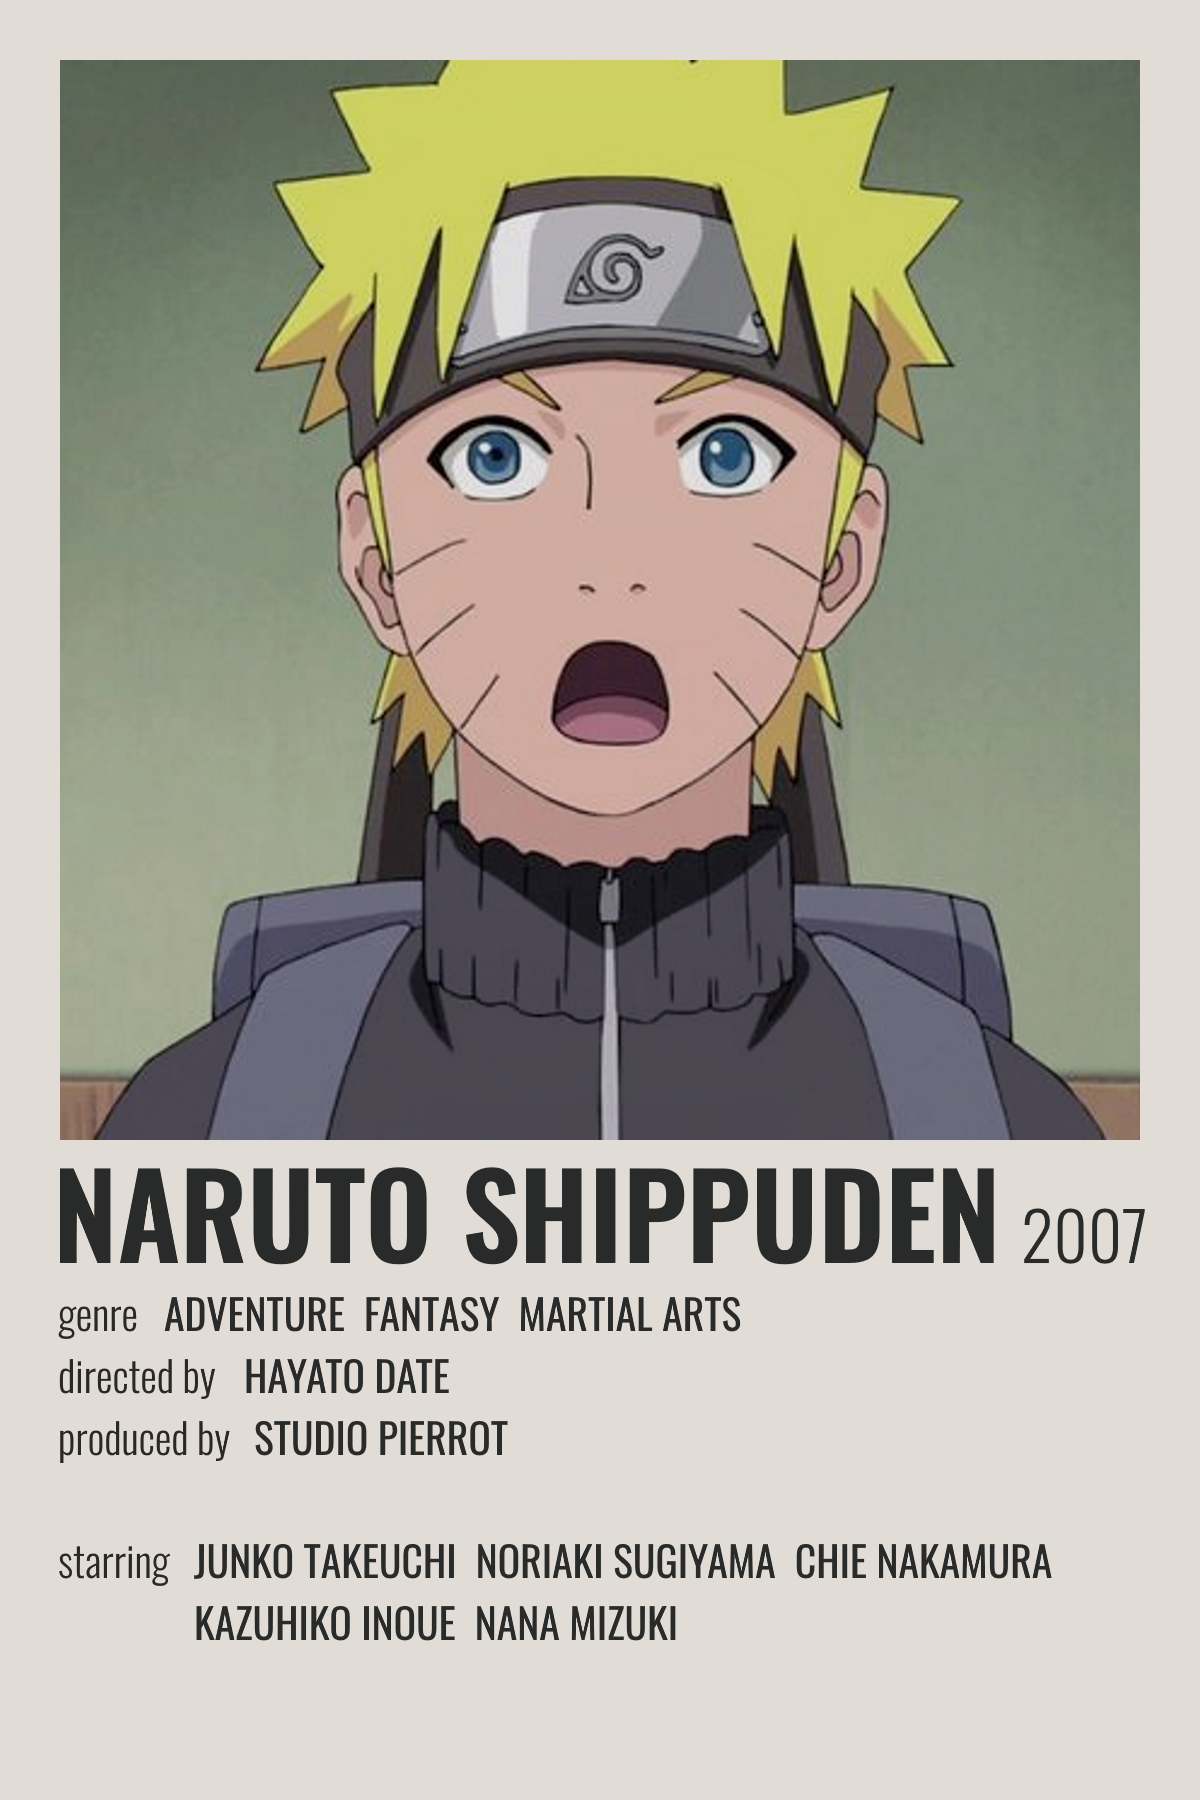 naruto shippuden poster in 2021 | Anime printables, Anime reccomendations,  Anime titles